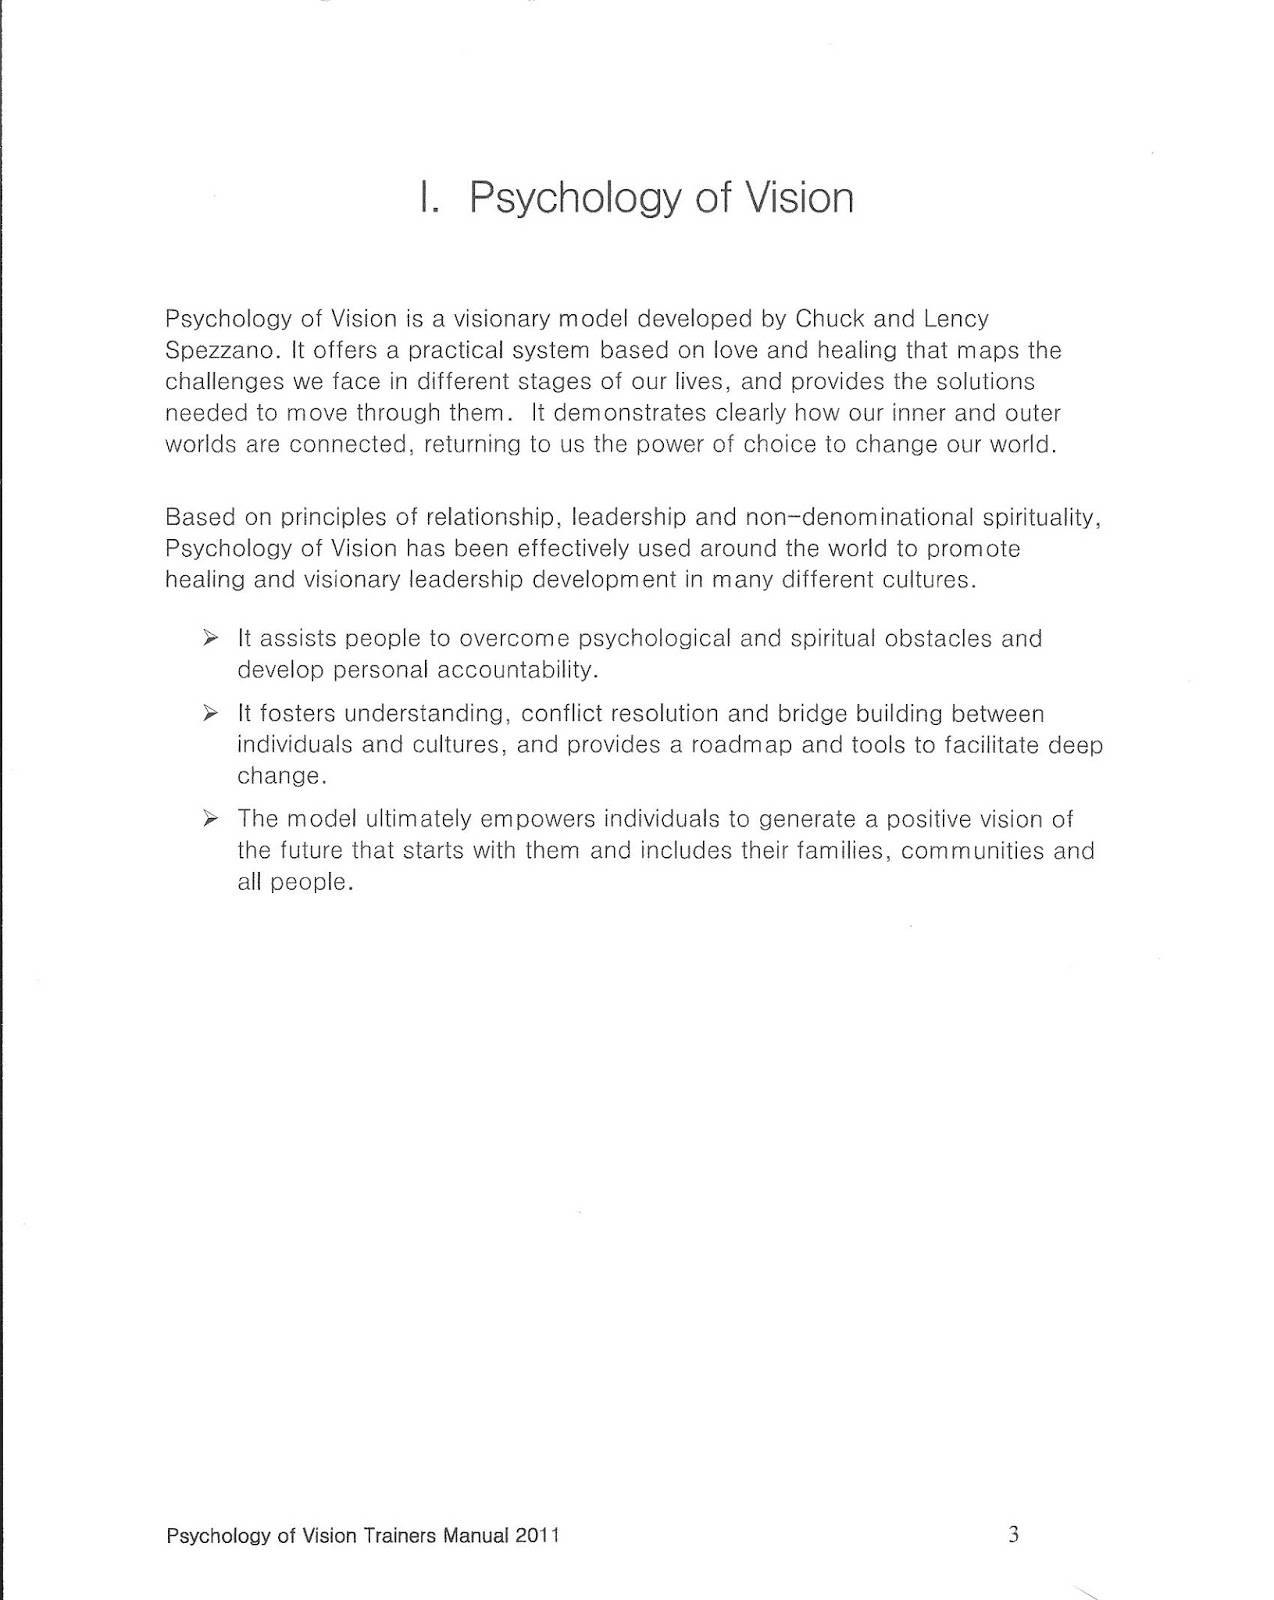 Documents about spezzano and associates ltd psychology of vision this document was removed from public view by spezzano and associates psychology of vision ltd in may 2014 fandeluxe Choice Image